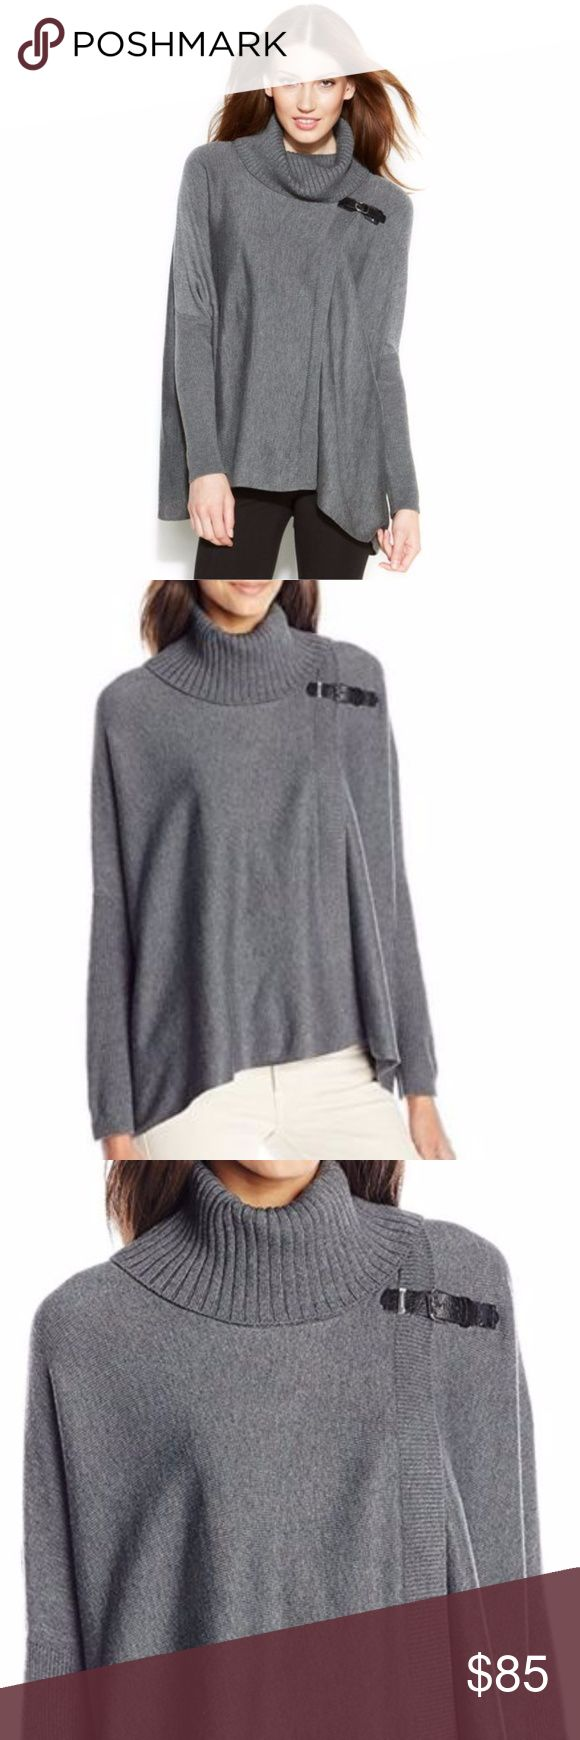 "NEW Calvin Klein Turtleneck Poncho Sweater L XL NEW Calvin Klein Turtleneck Poncho Sweater *New without Tags Details: Calvin Klein Size: L/XL Color: Gray Pullover style Ribbed sleeves Buckle detail Acrylic/Polyester  Measurements: Length: 29"" Bust: 70"" Waist: 66"" Calvin Klein Sweaters Shrugs & Ponchos"